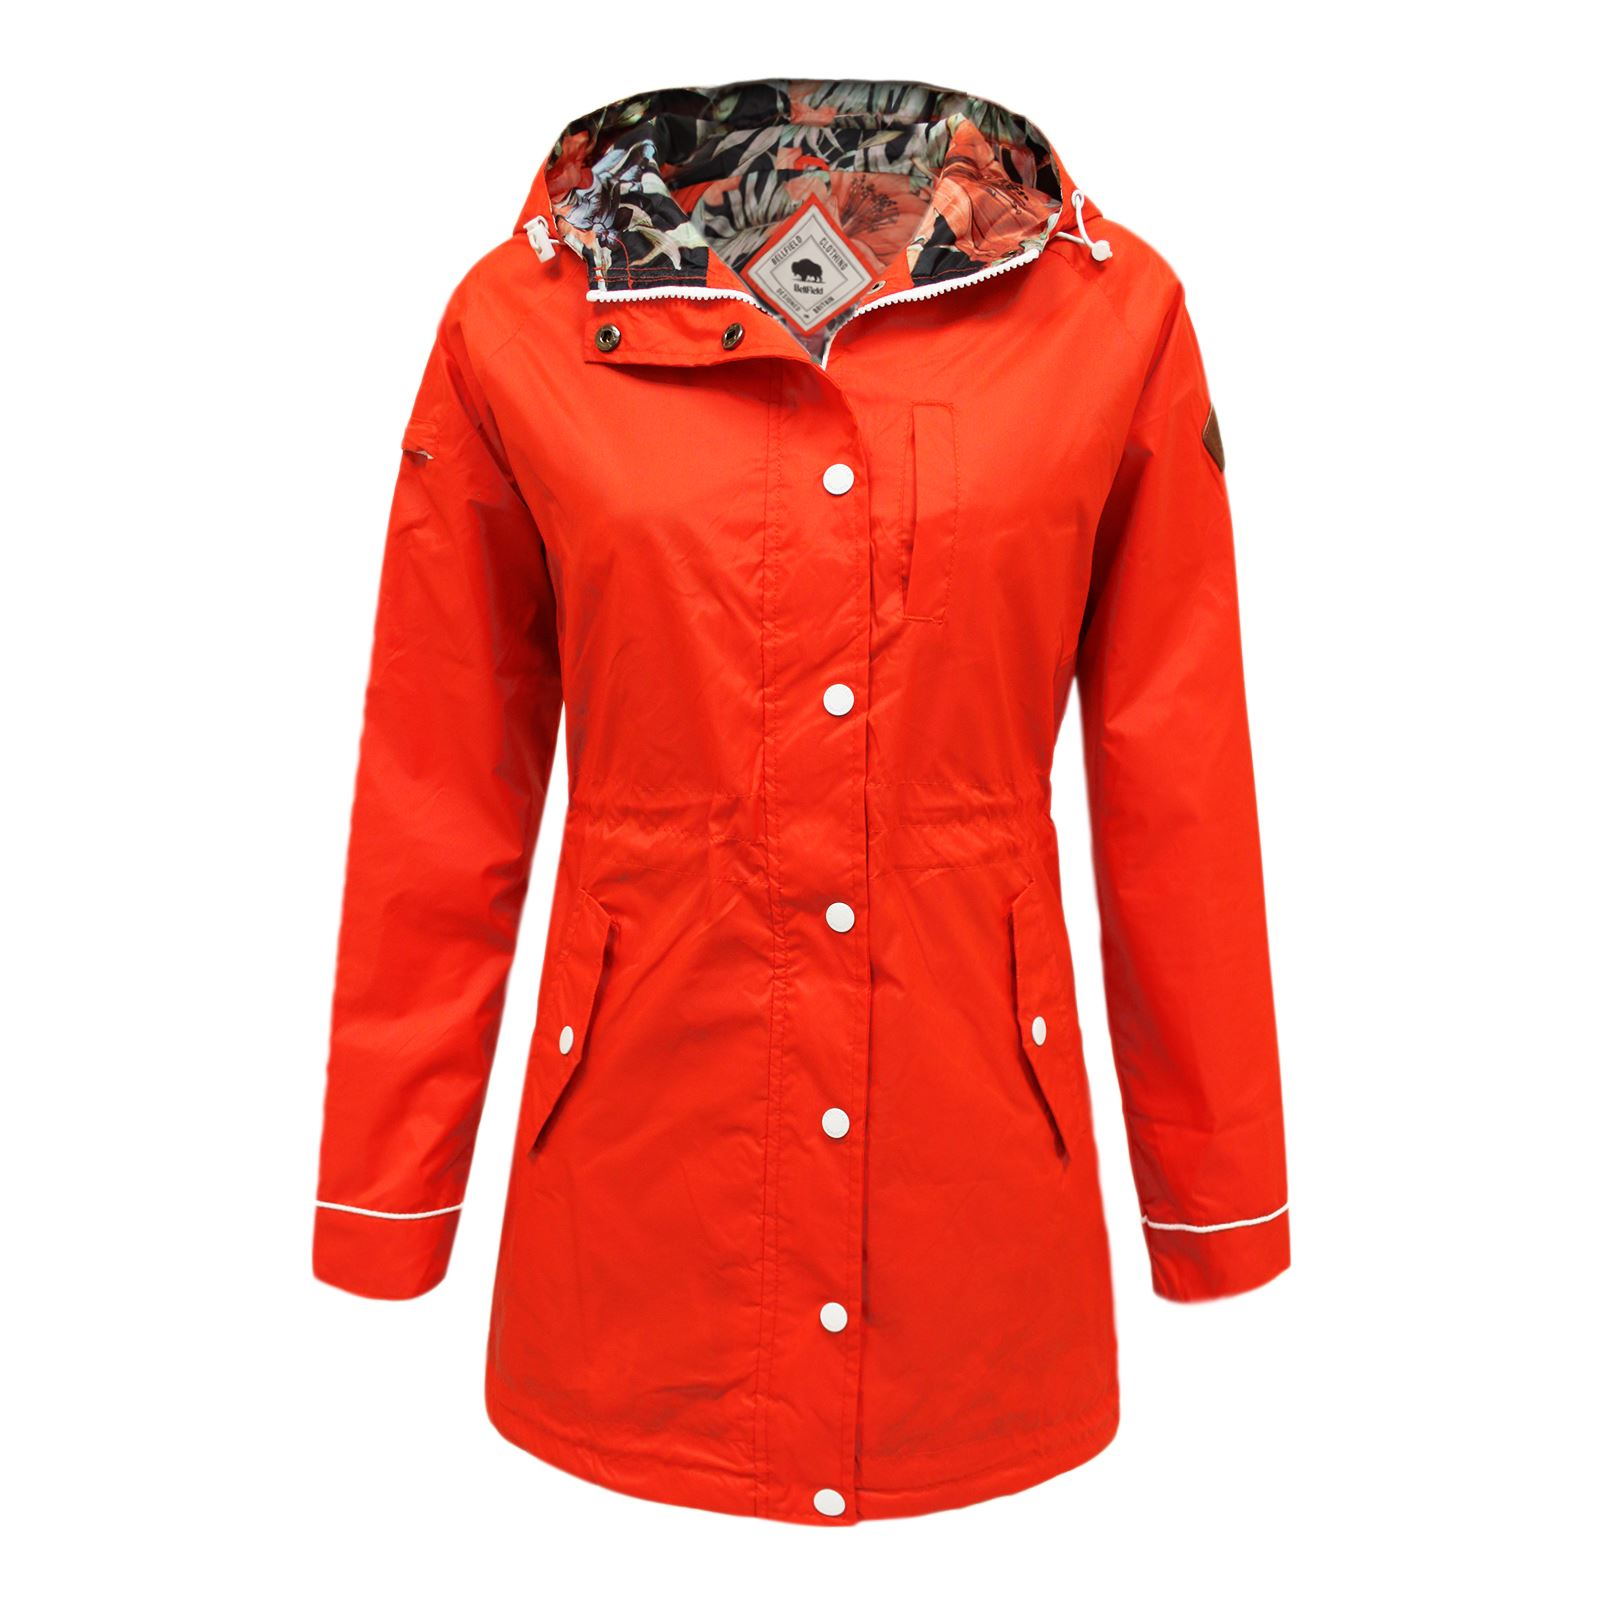 Light Waterproof Jacket Womens - JacketIn